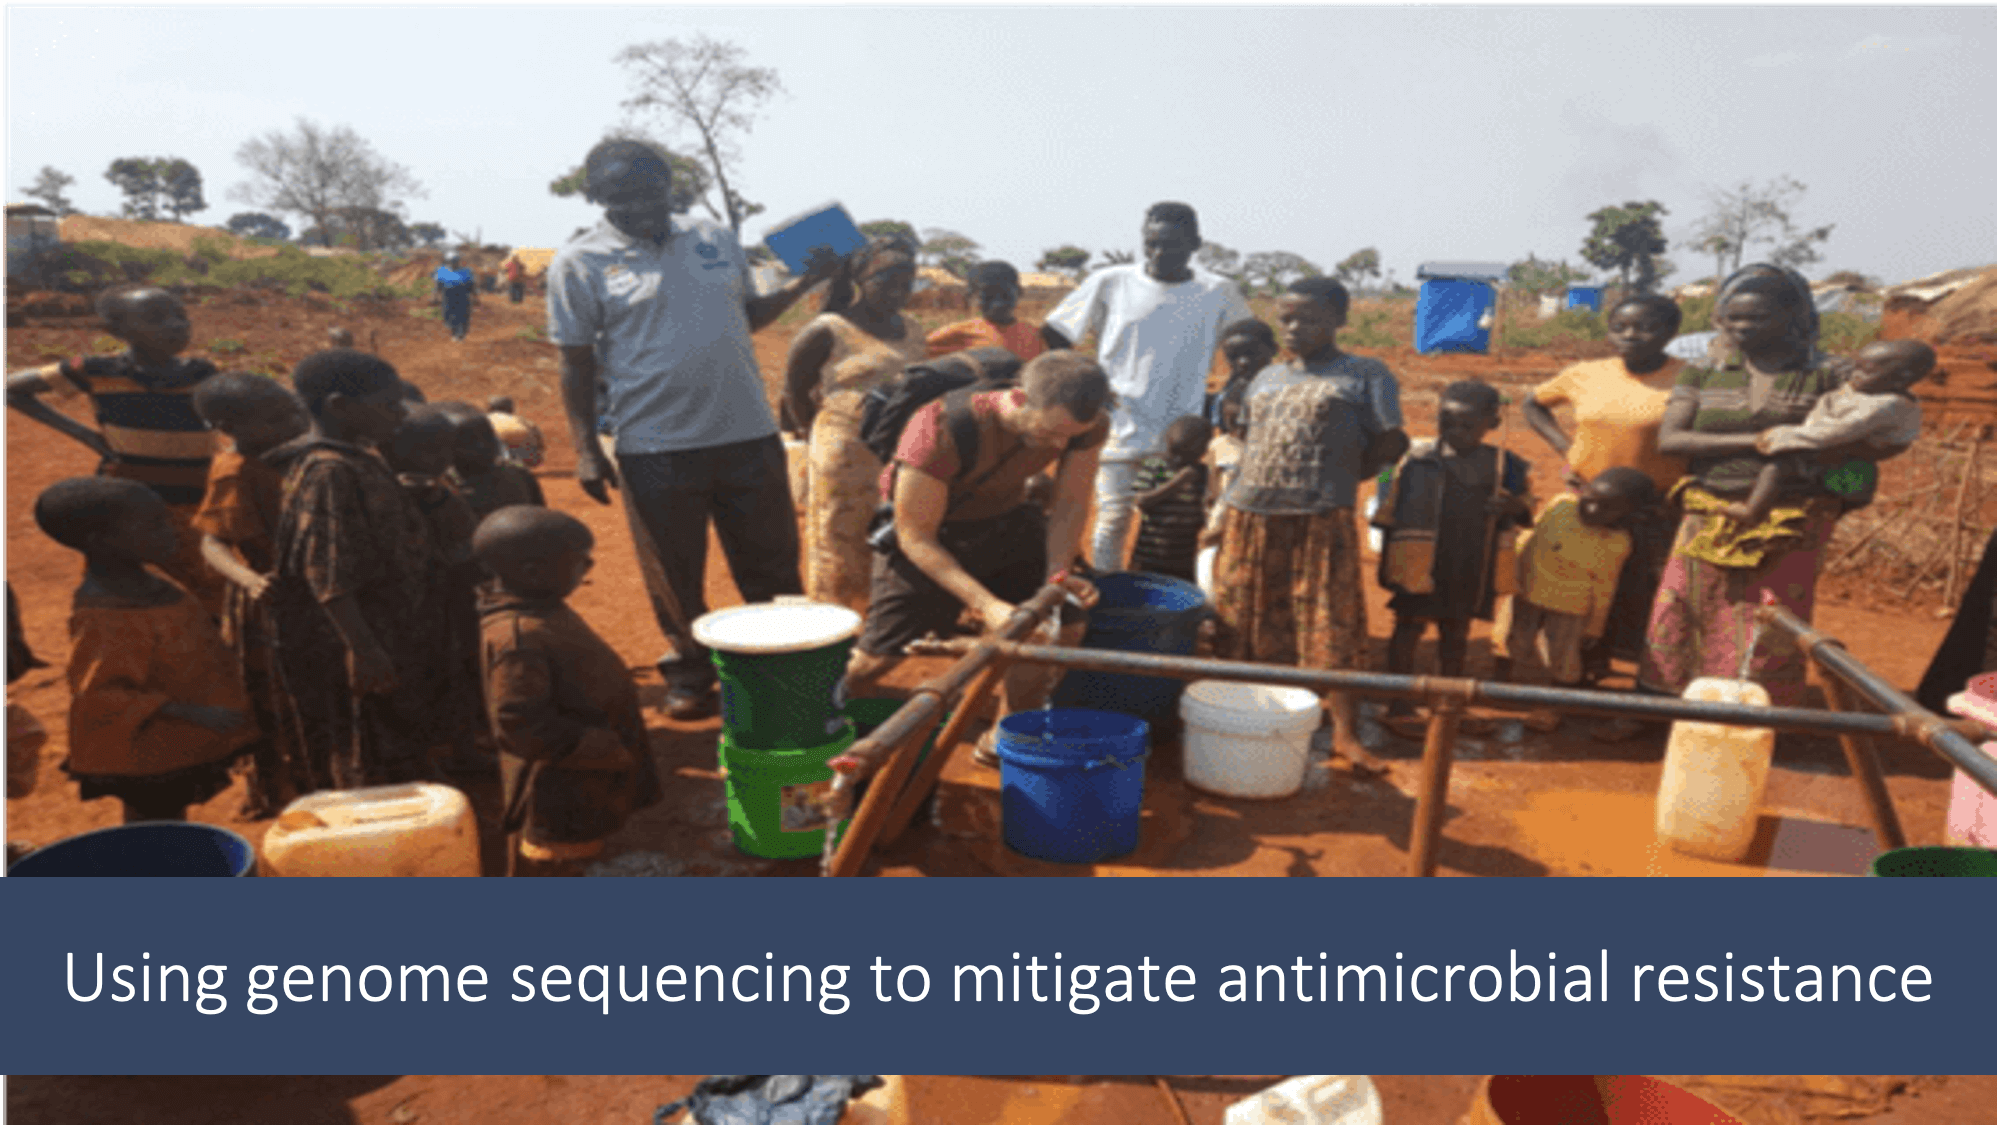 genome-sequencing-antimicrobial-resistance copy